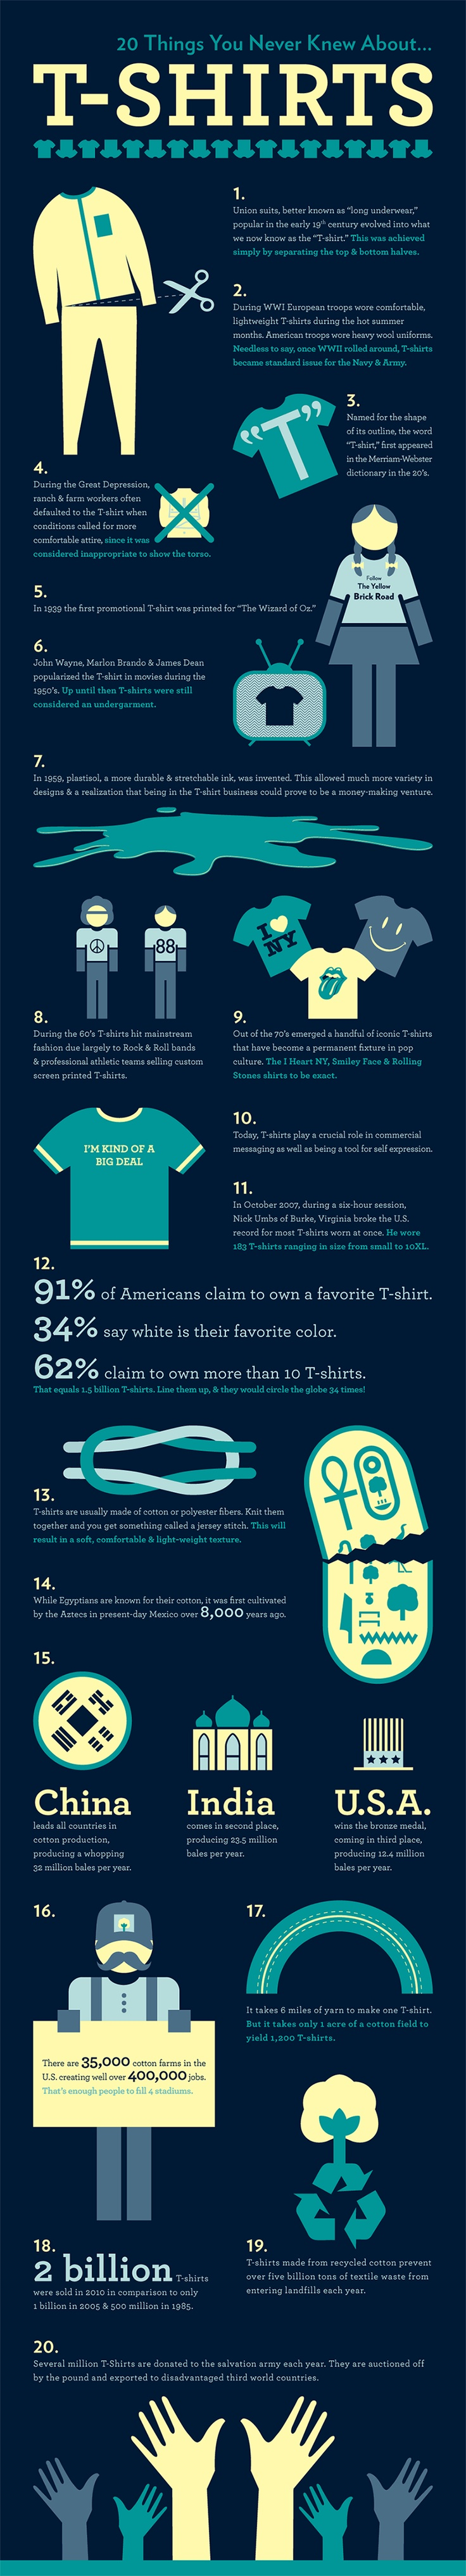 20 things you didn't know about t-shirts